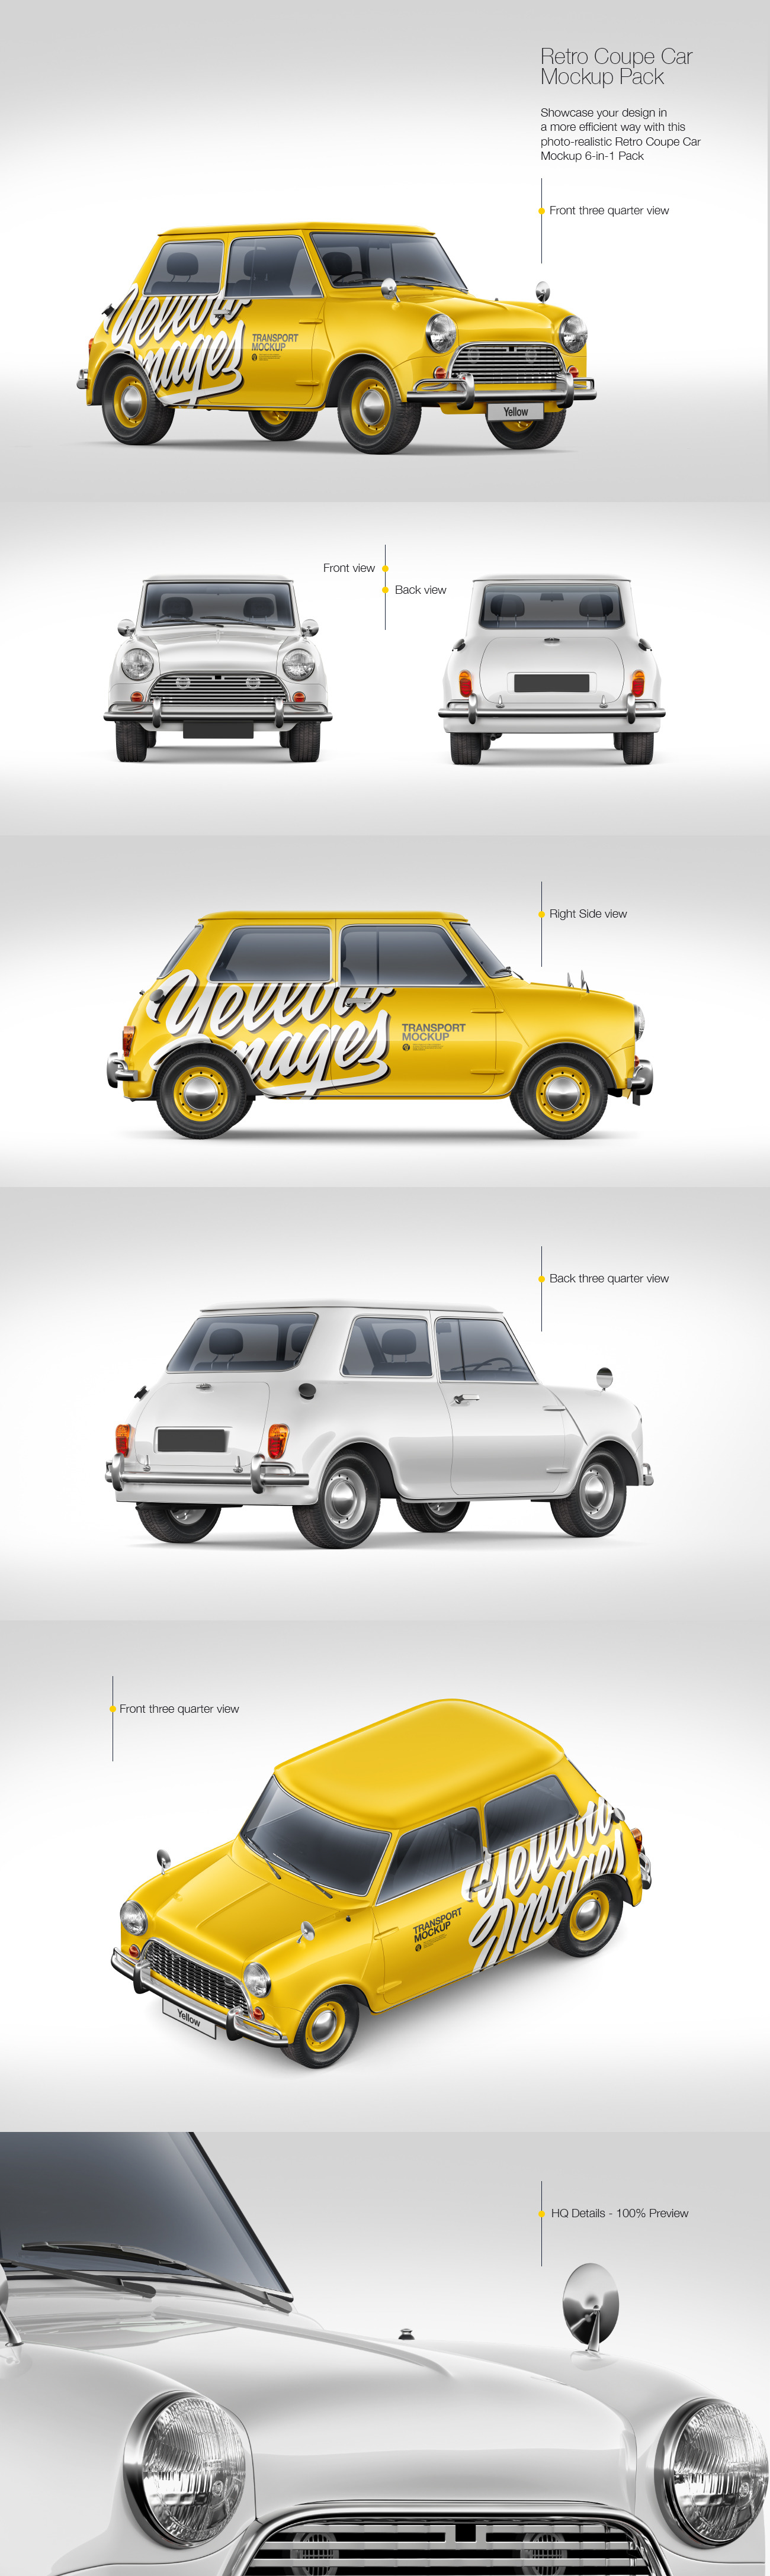 Retro Coupe Car Mockup Pack